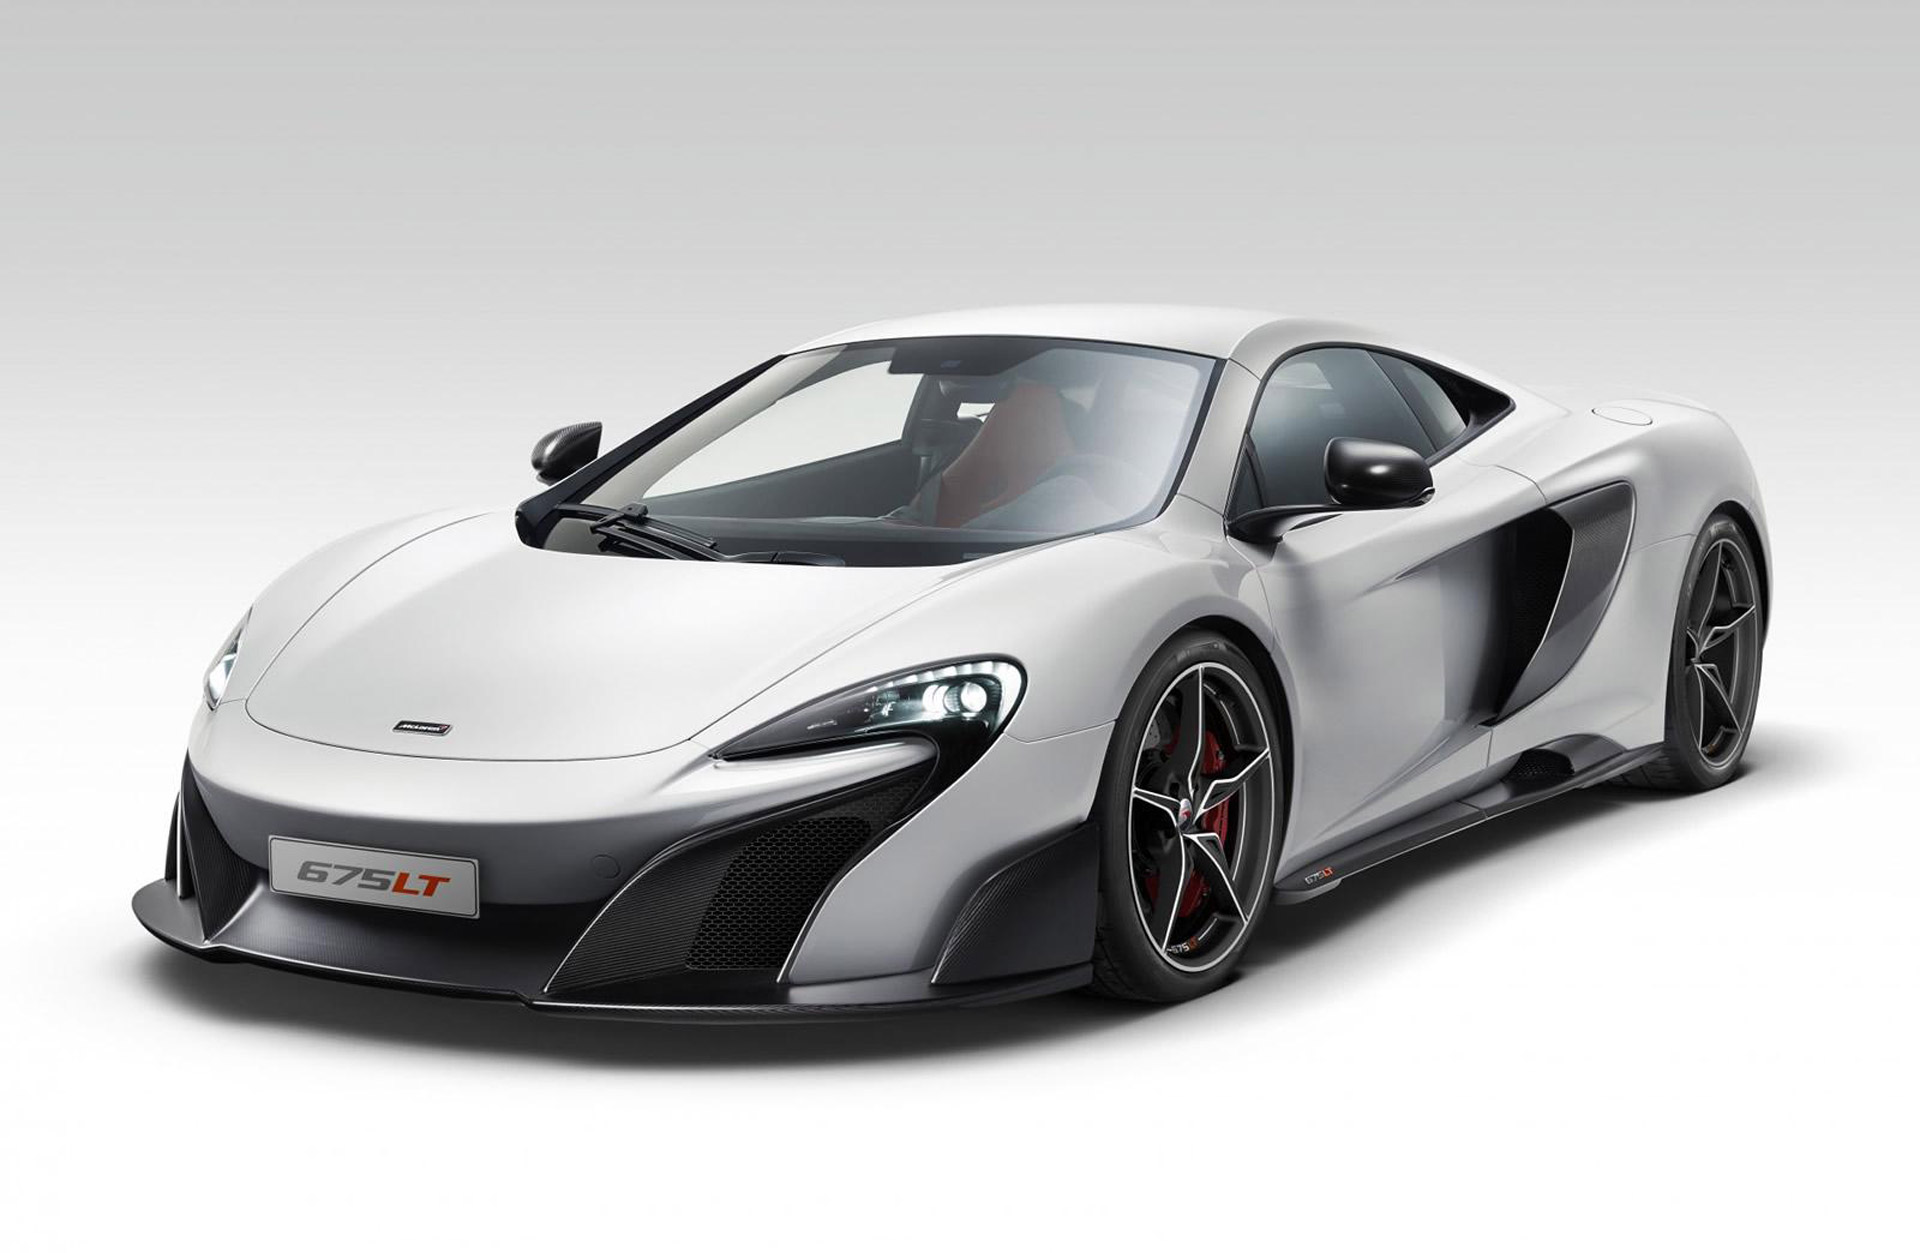 McLaren 675LT Supercar Revealed Ahead Of 2015 Geneva Motor ...